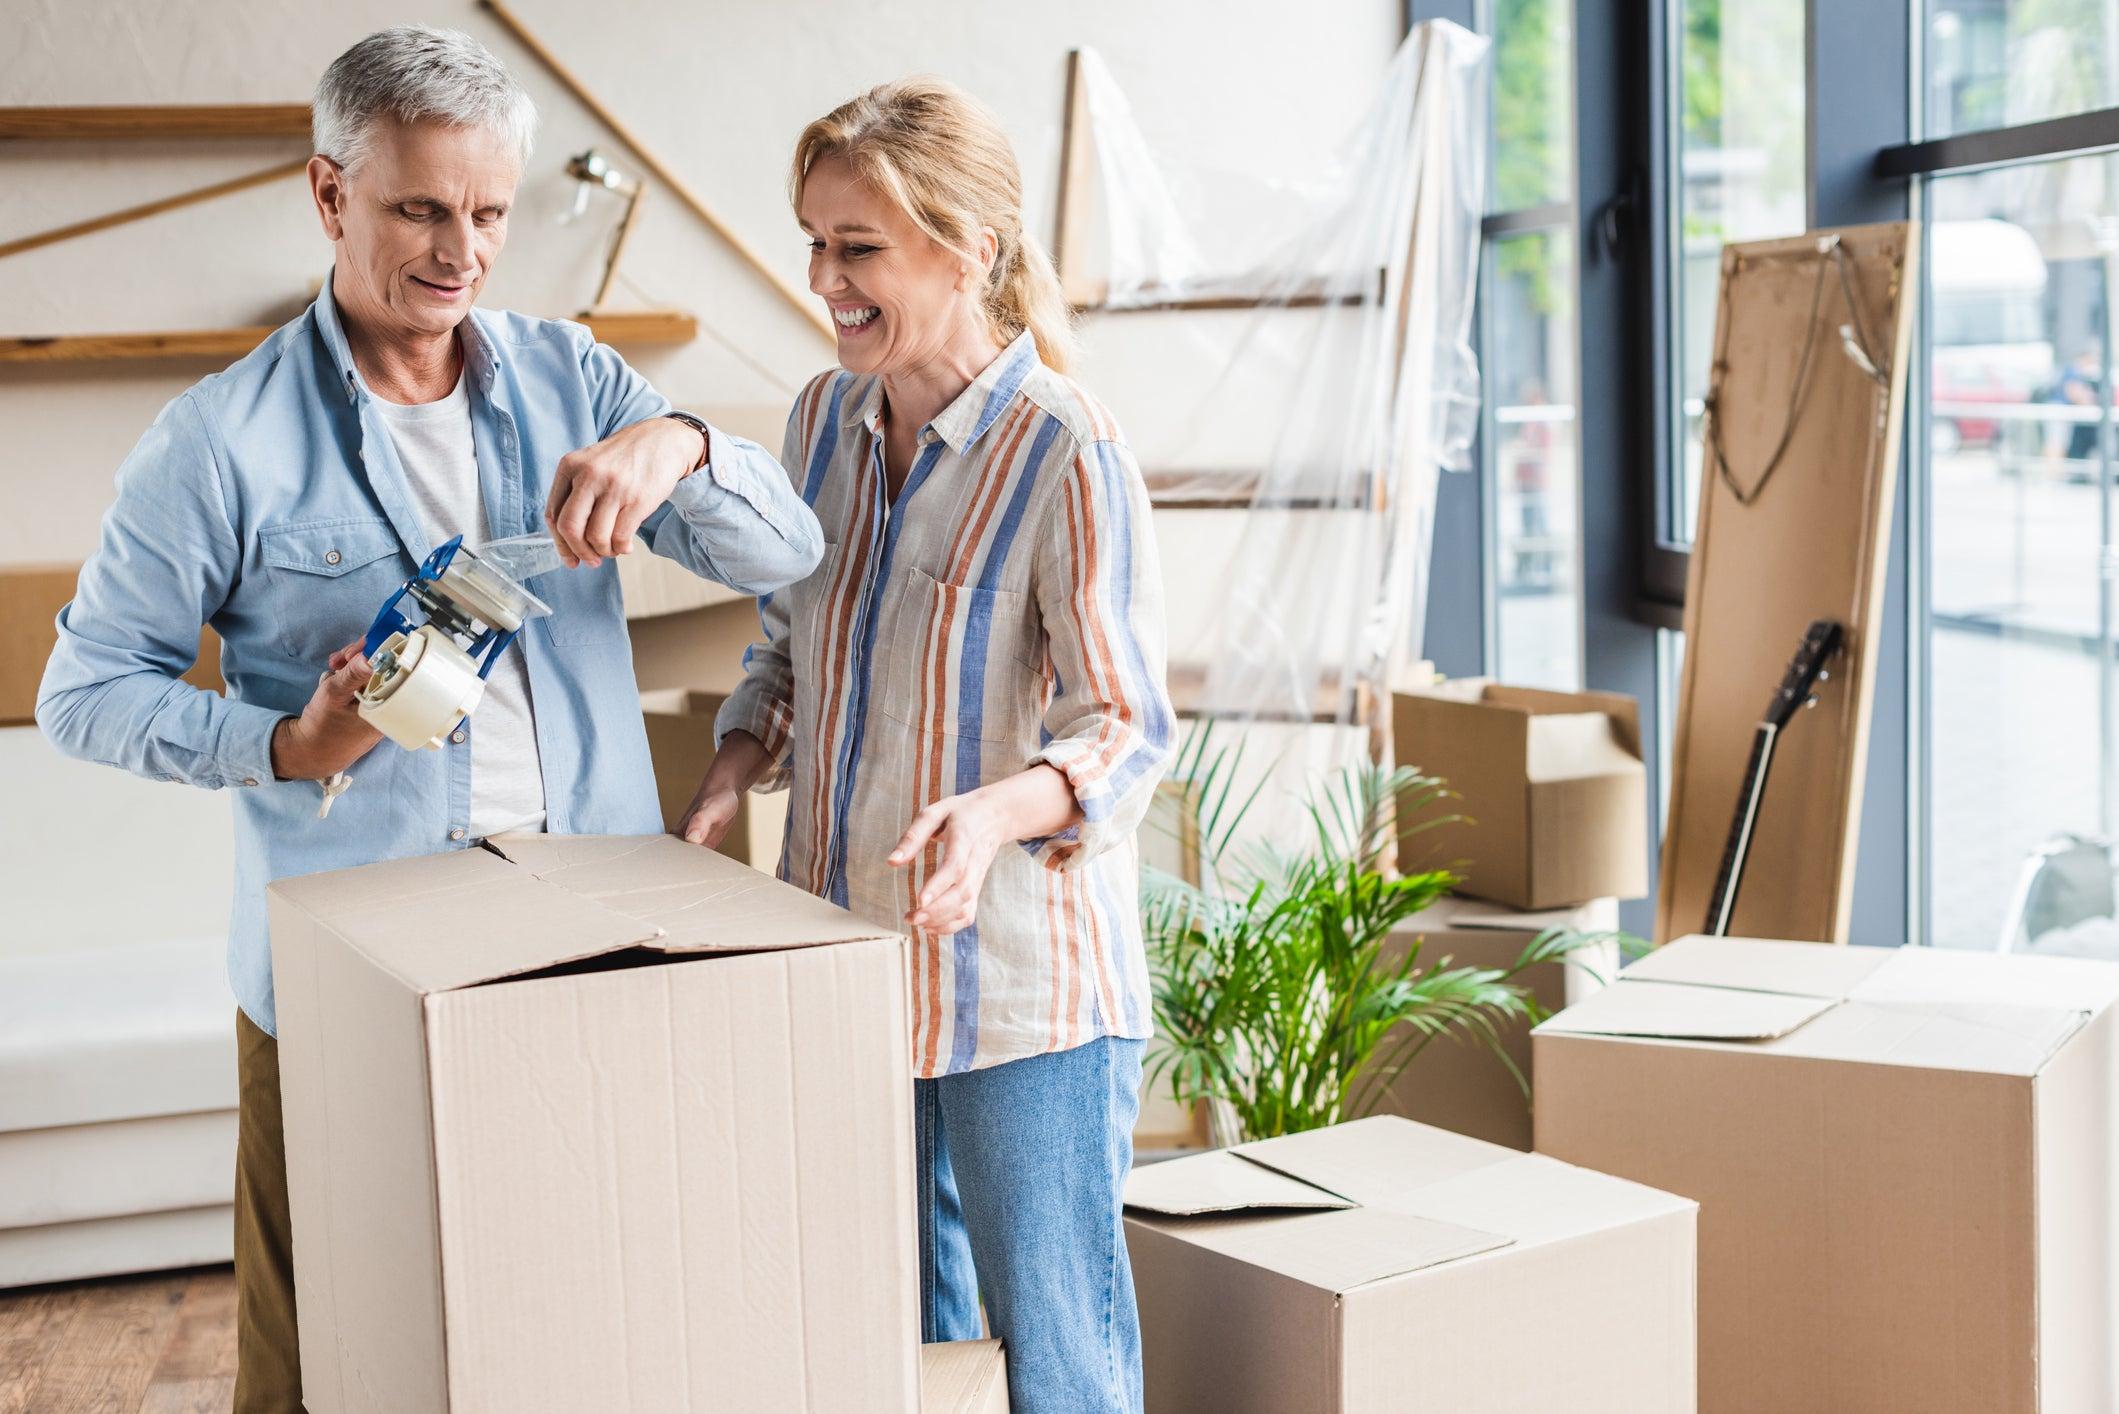 Plan to Relocate in Retirement? Ask Yourself These 4 Questions First | The Motley Fool